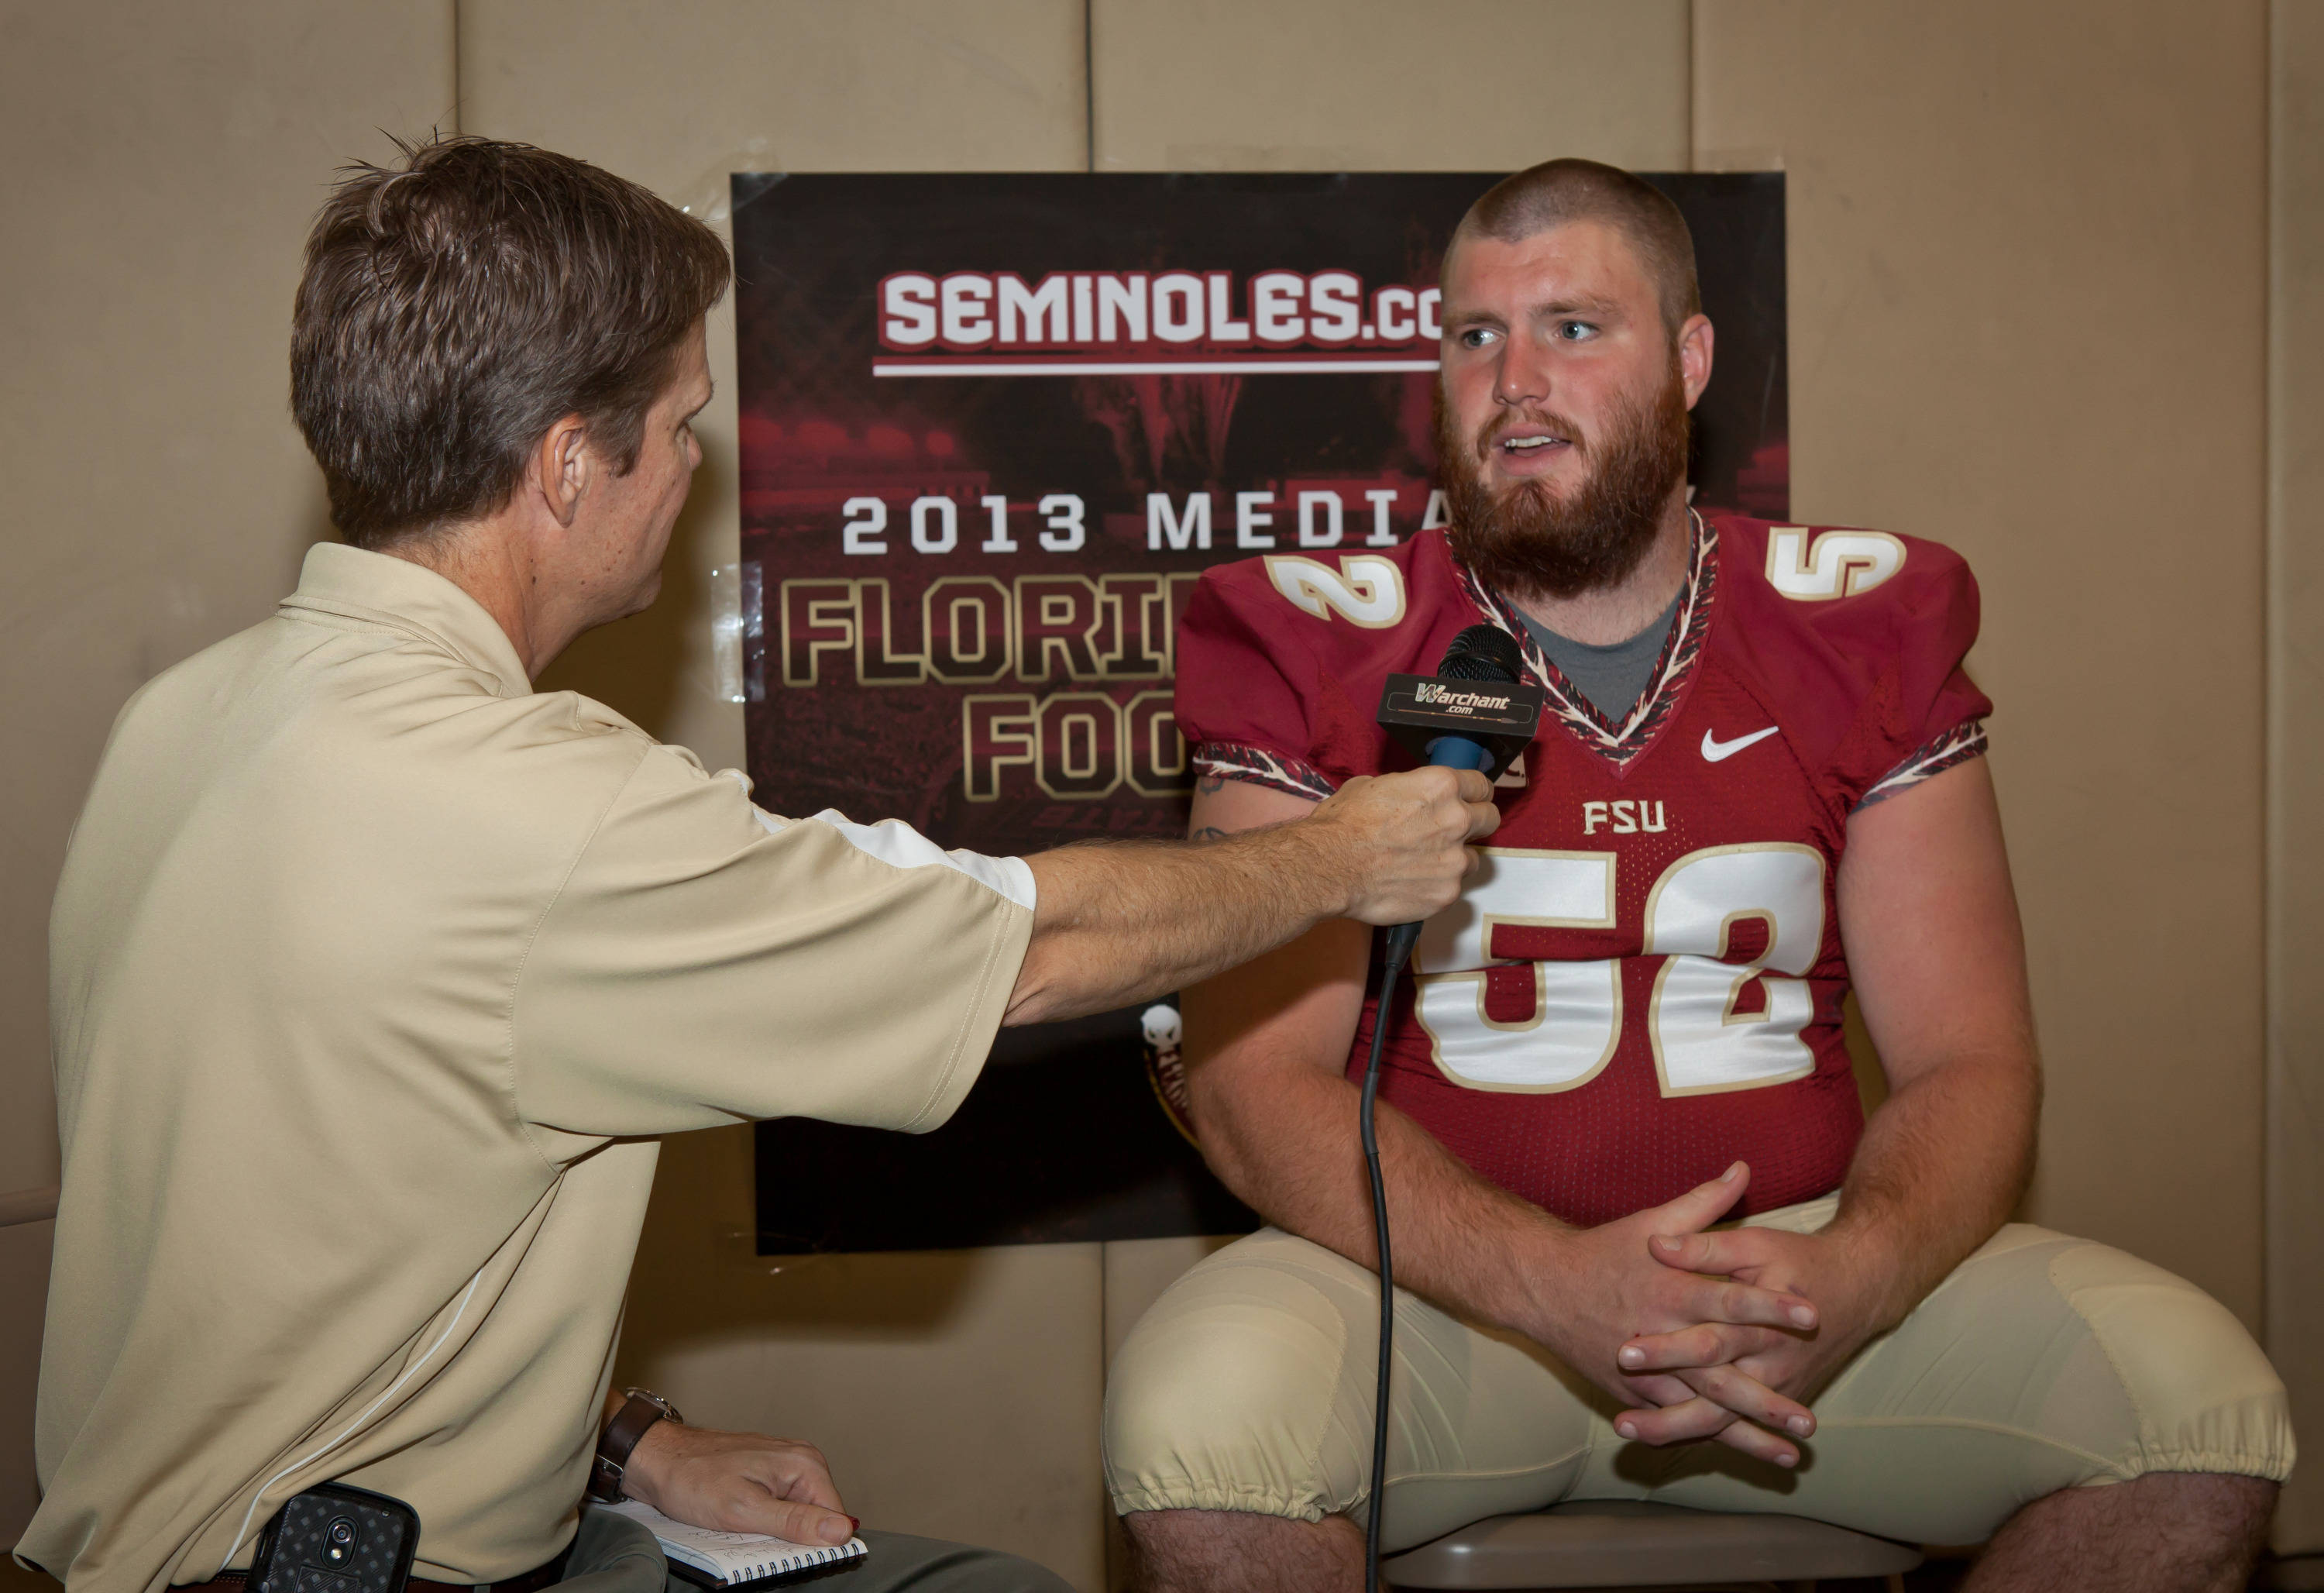 Bryan Stork gets interviewed in the Electronic Interview area.